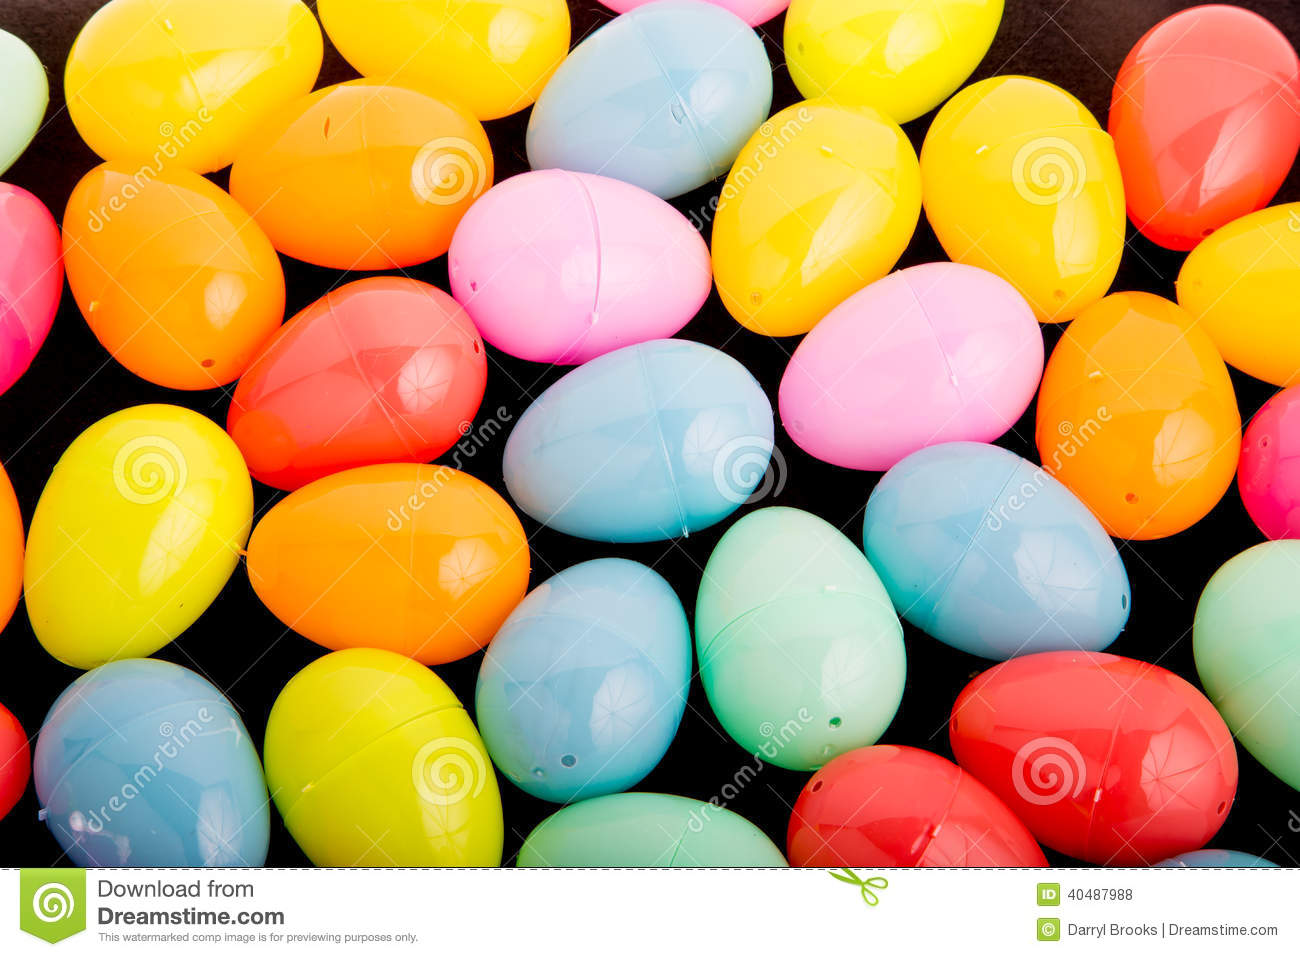 plastic easter eggs royalty free stock image 13136314. Black Bedroom Furniture Sets. Home Design Ideas